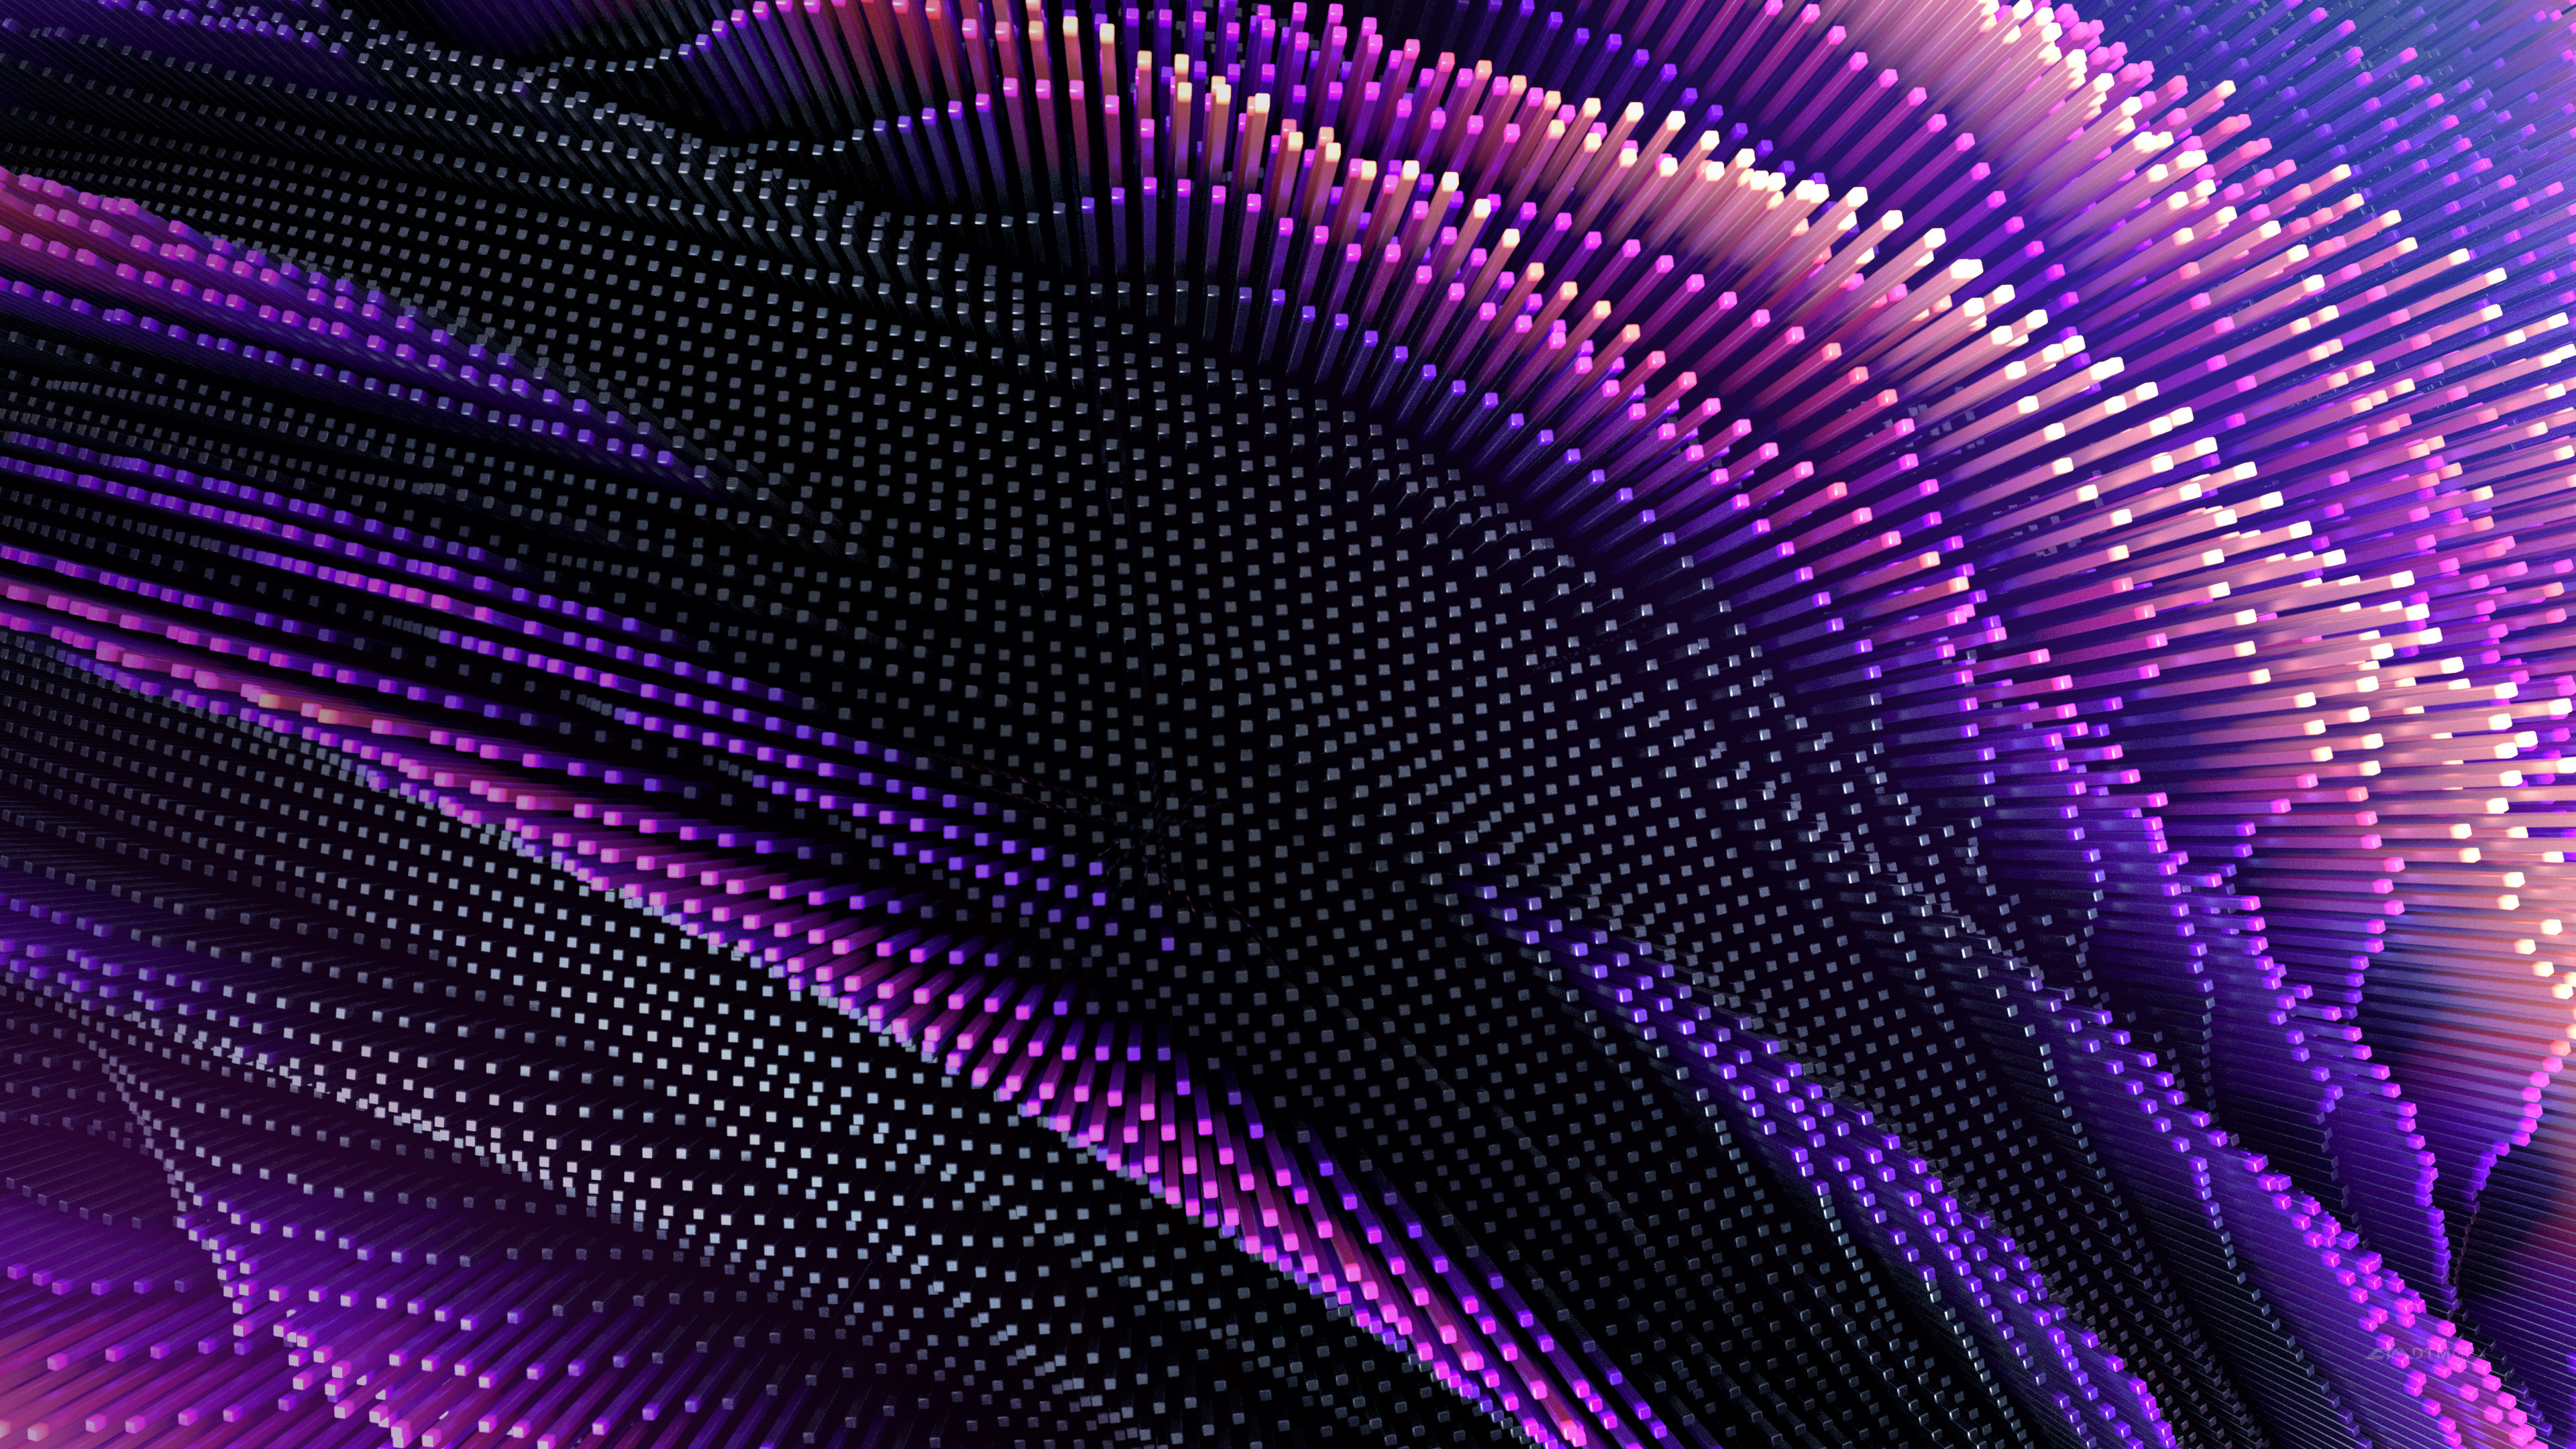 abstract dillute 4k 1553075322 - Abstract Dillute 4k - hd-wallpapers, behance wallpapers, abstract wallpapers, 4k-wallpapers